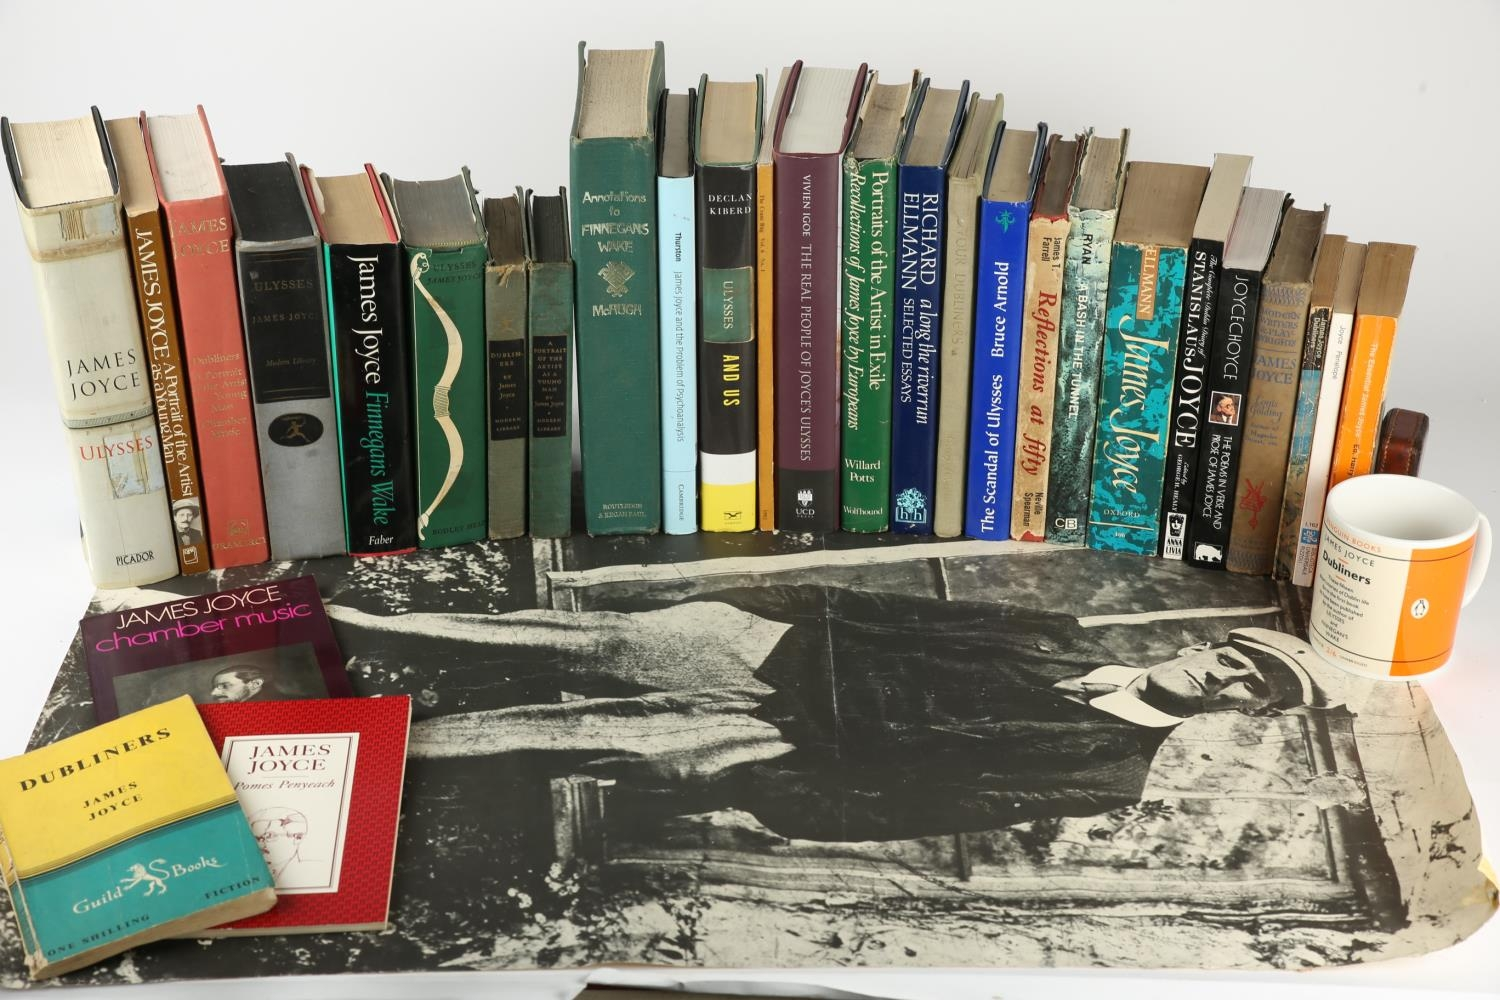 A collection of 29 books by and about James Joyce including Ulysses, Random House, 1946; Bodley